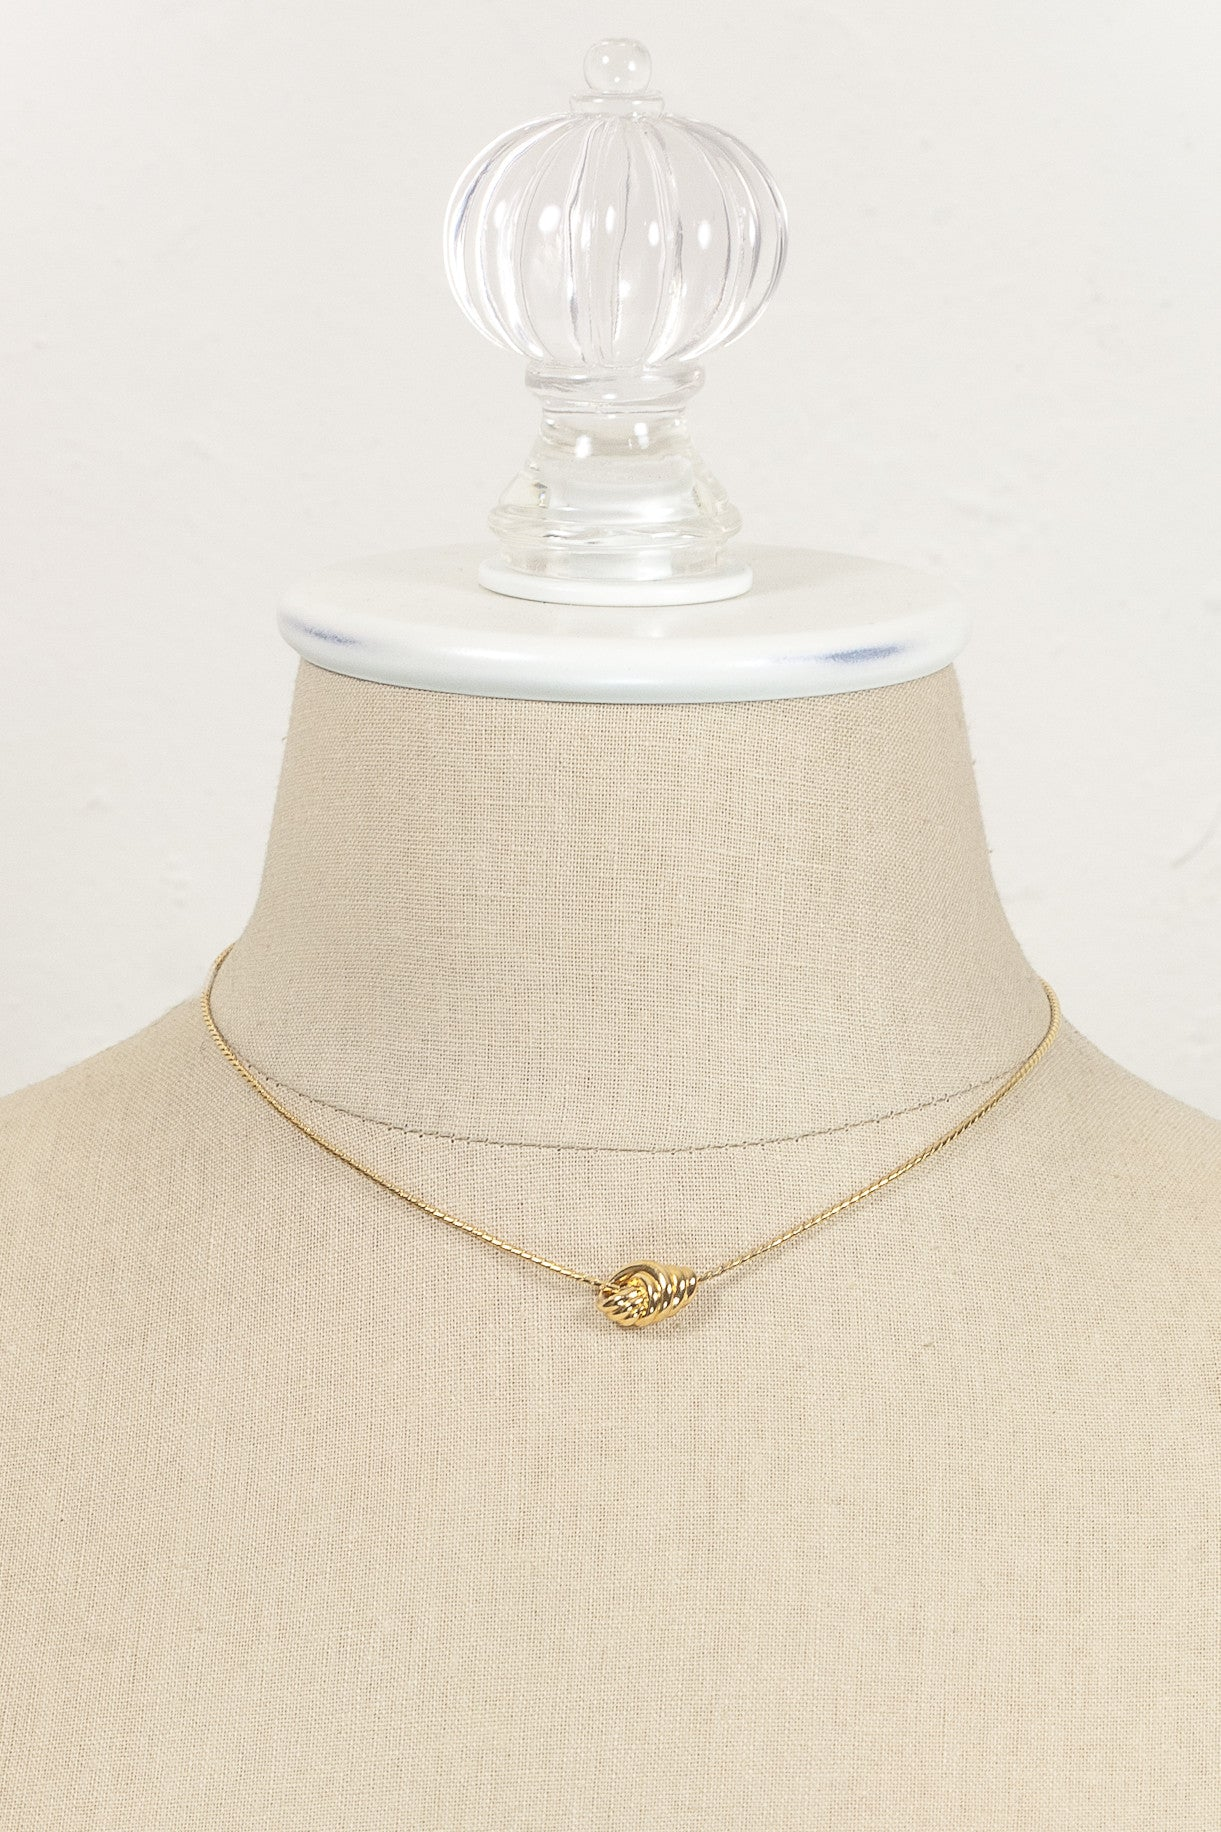 Vintage Monet Dainty Gold Knot Necklace